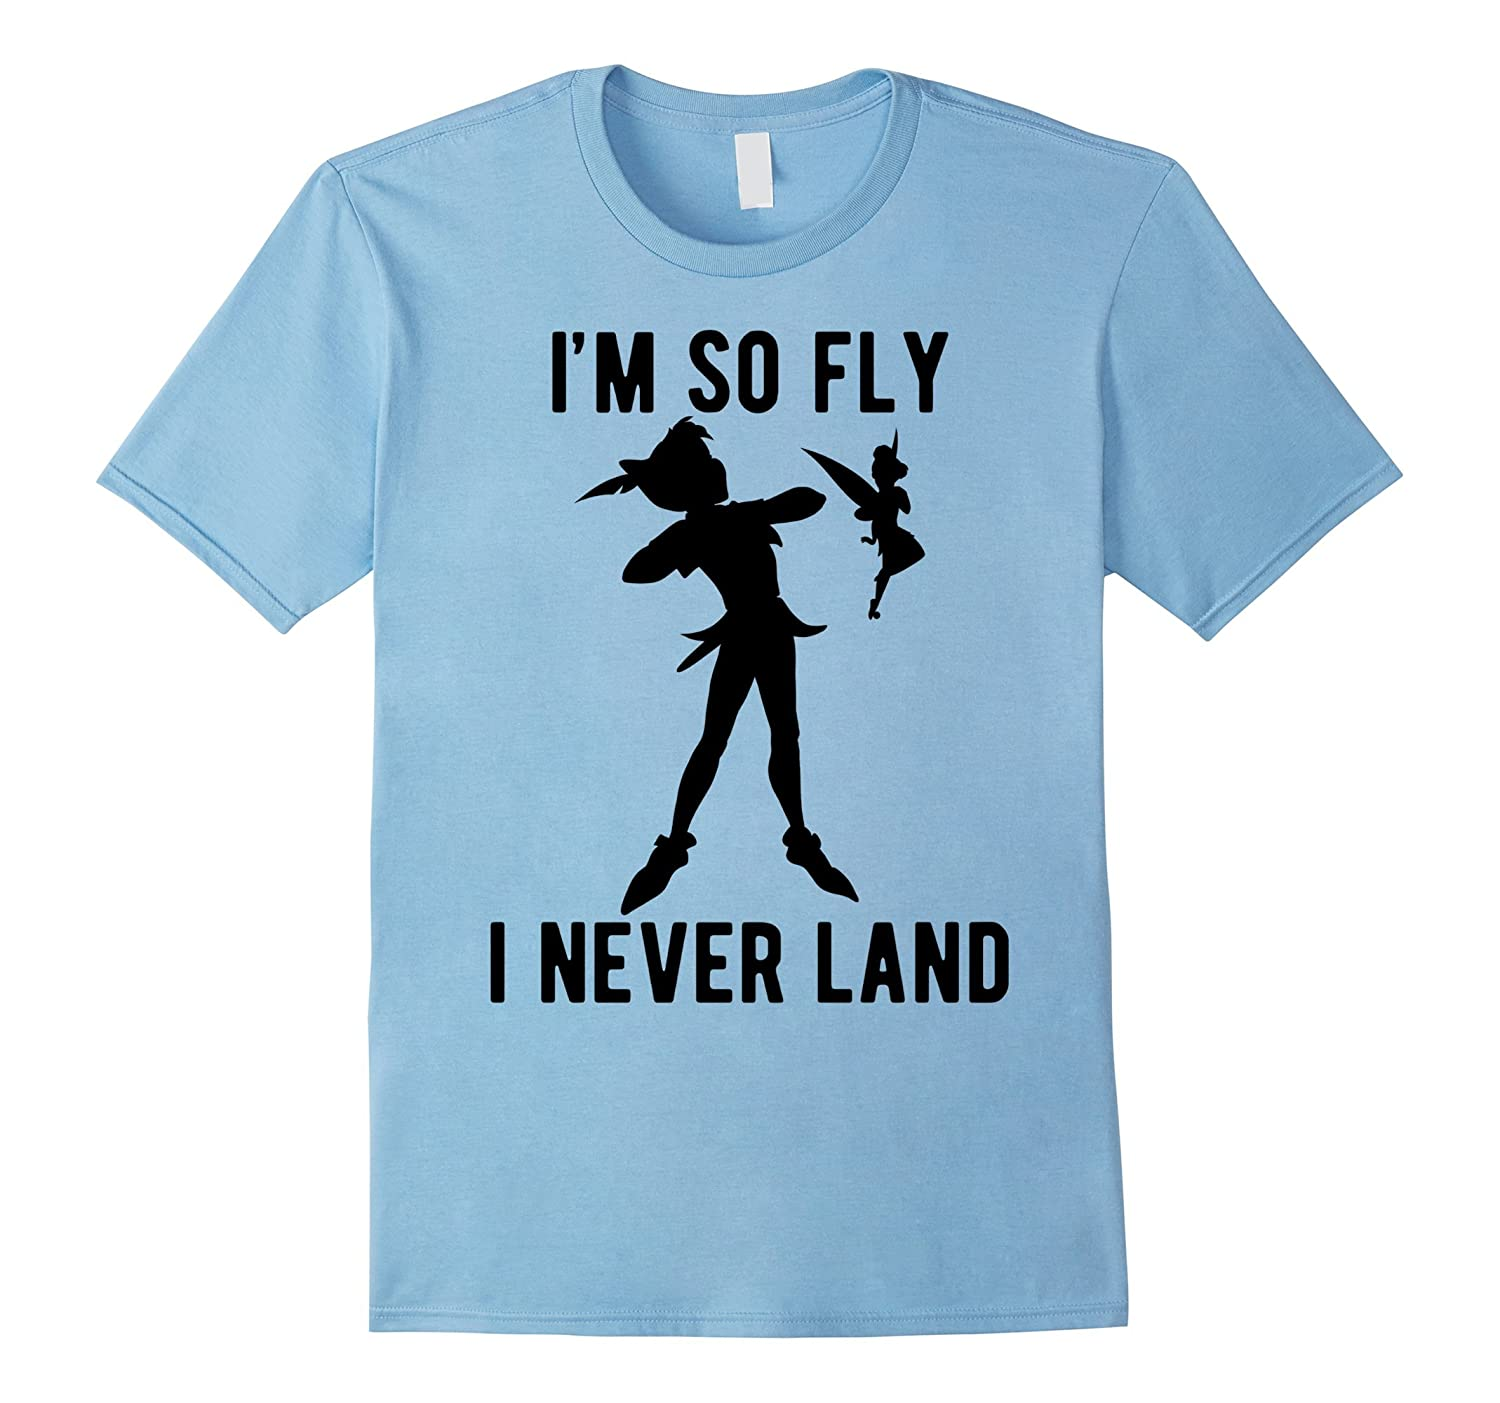 Adult I M So Fly I Neverland T Shirt Amazon Com # Fly Meubles Audio Bois